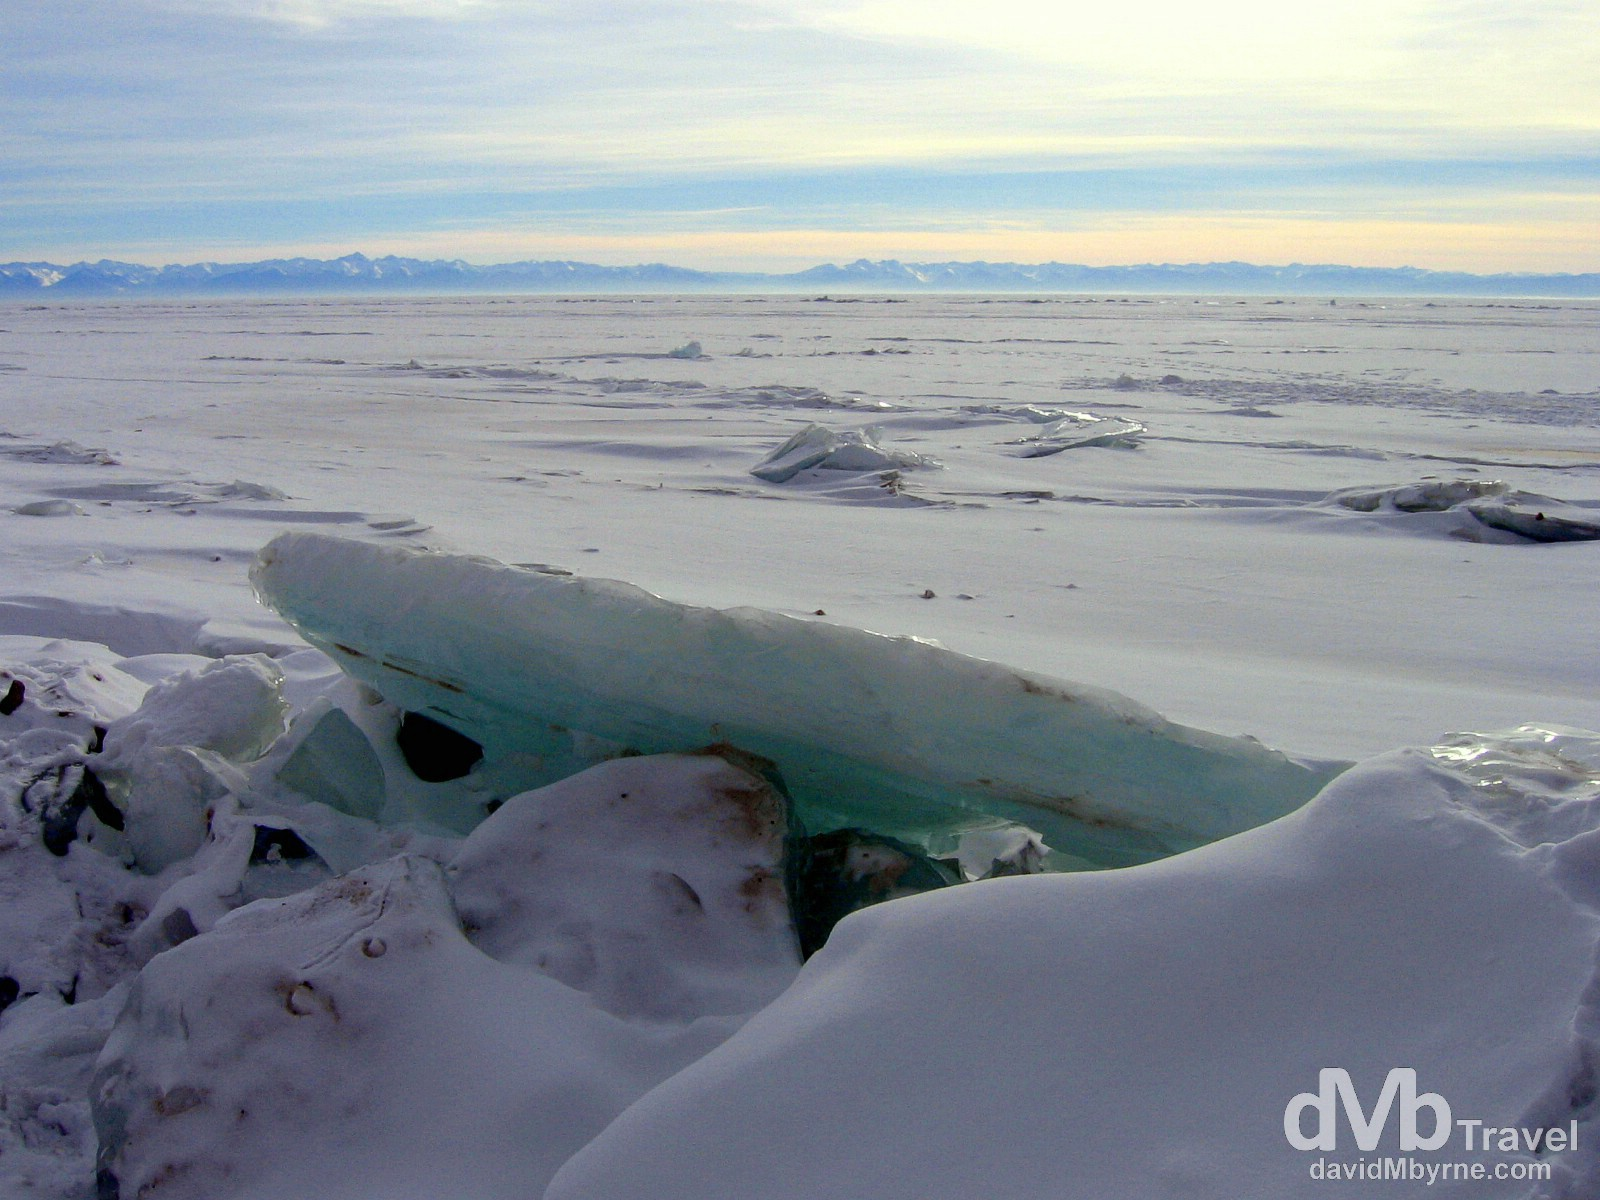 Huge chunks of crystal blue ice protruding from the surface of a frozen Lake Baikal in Siberian Russia. February 18, 2006.